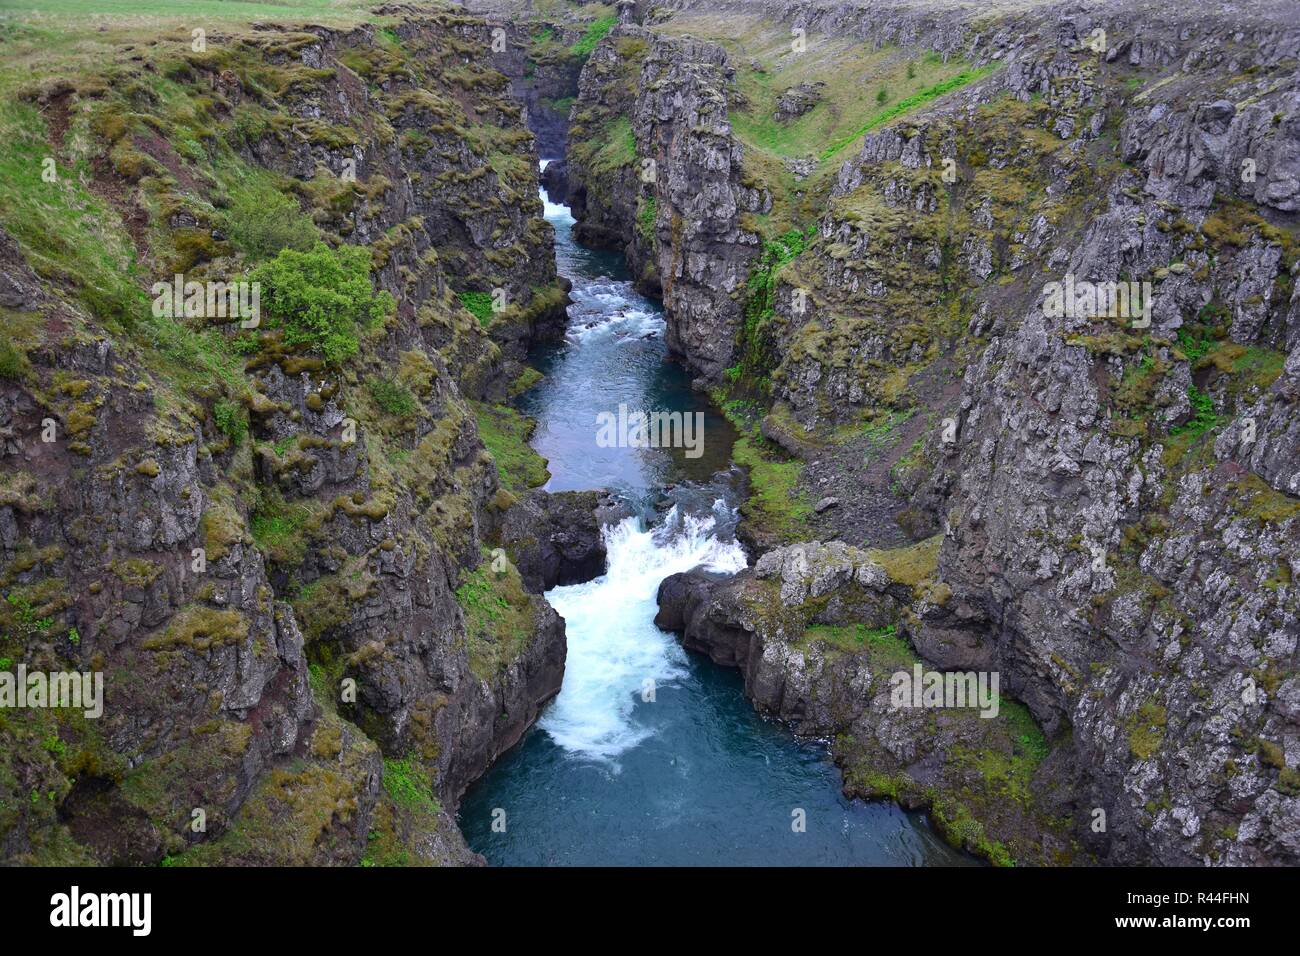 The Kolugljufur canyon in the northwest of Iceland, which was dug by the female troll Kola according to the legend. - Stock Image